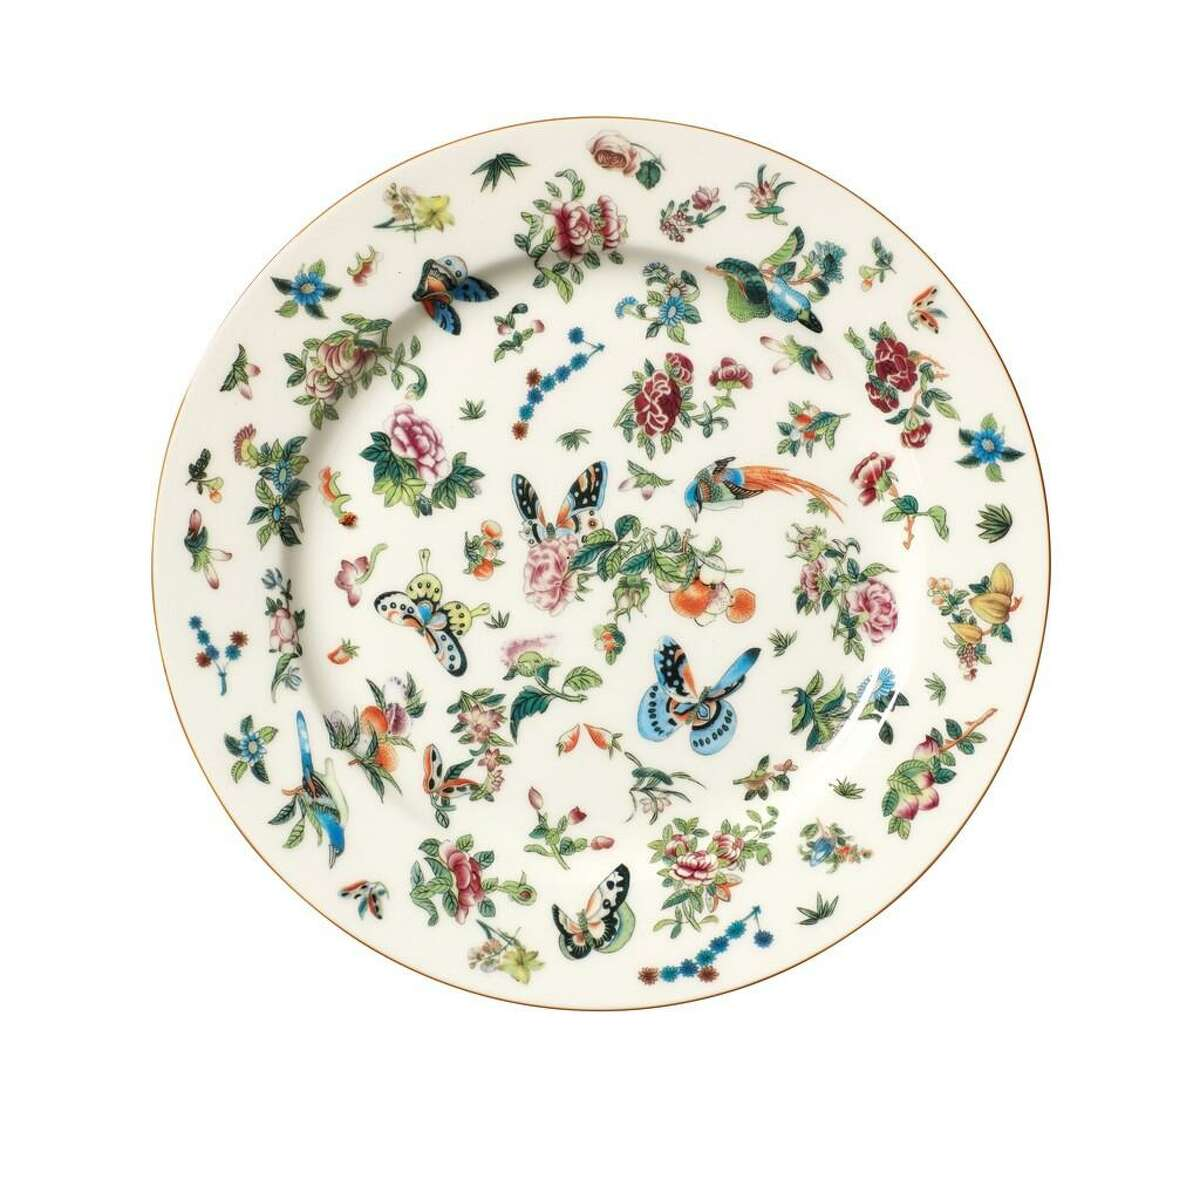 British home goods store OKA is expanding to the U.S. and a shop will open in April 2021 in the storefront on West Alabama that once housed Wisteria. Its inventory includes Adam Lippes collection for OKA, with these Roseraie dishes.